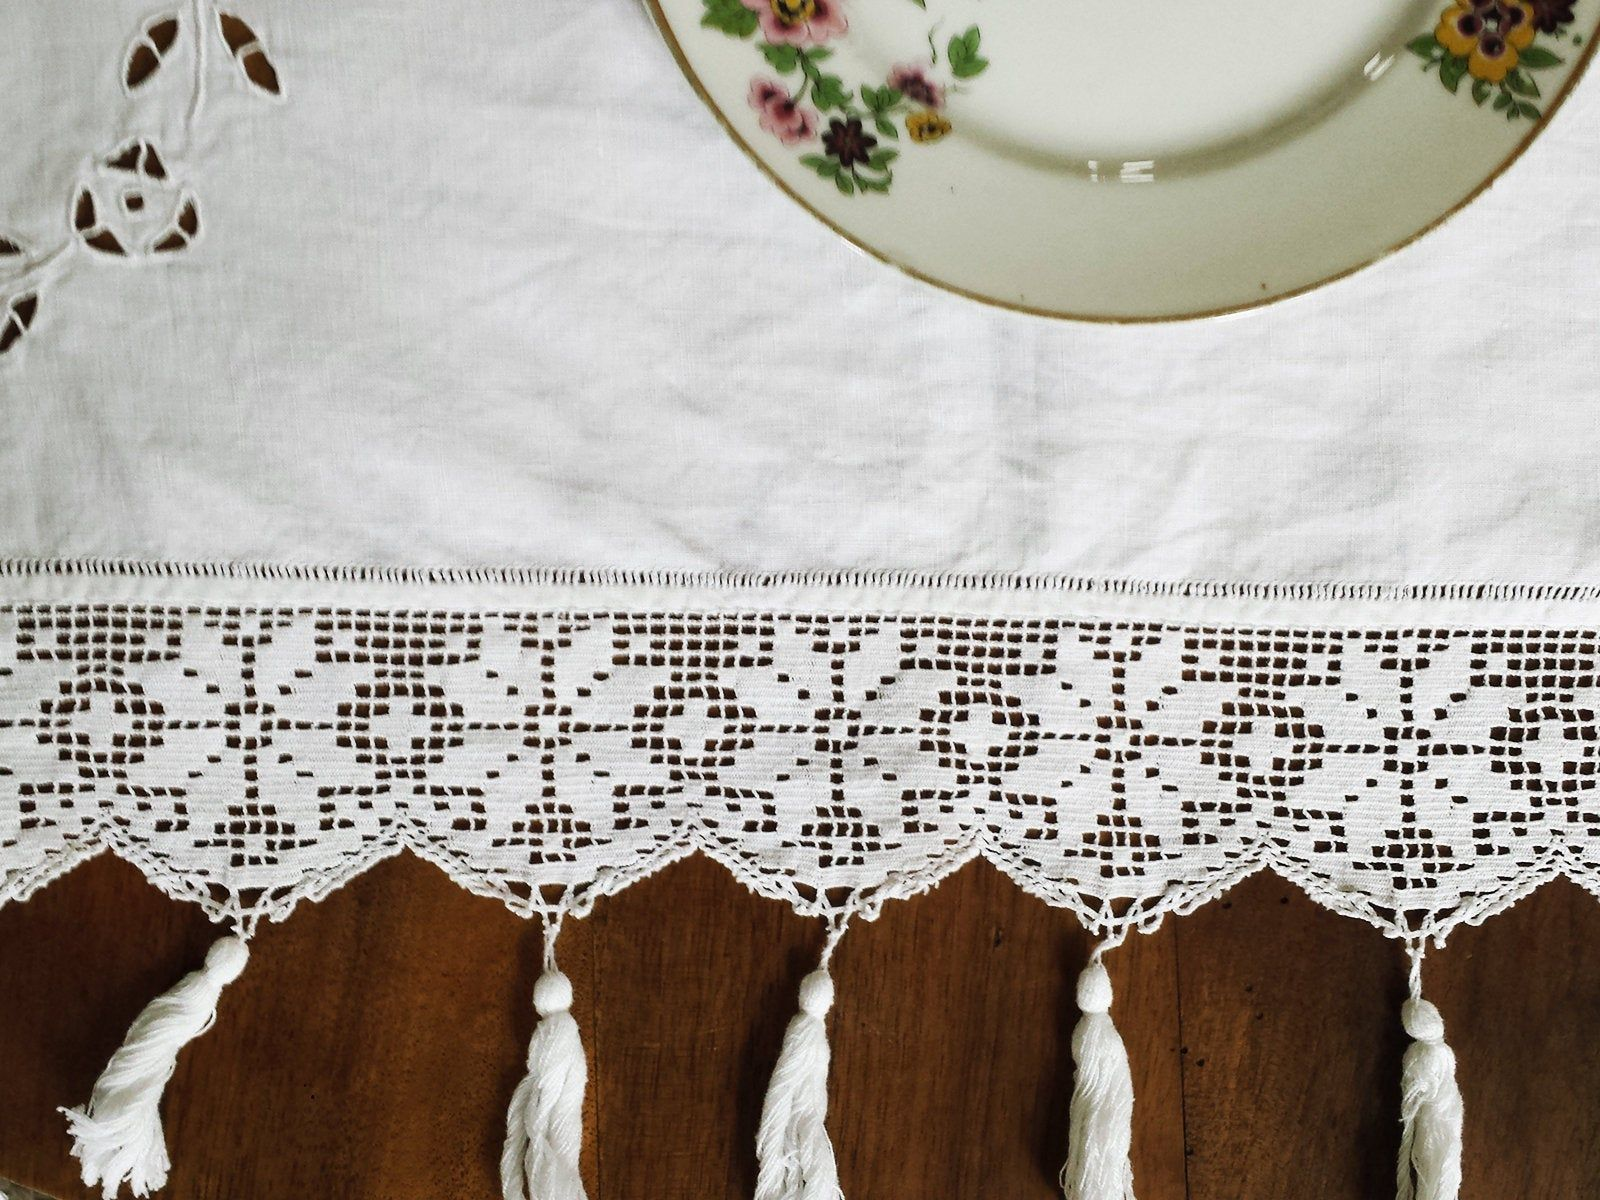 Antique Embroidered Tablecloth White Tablecloth Embroidery Crochet Pompon Decoration Wedding Decoration Shabby Chic Linen Mothers Day